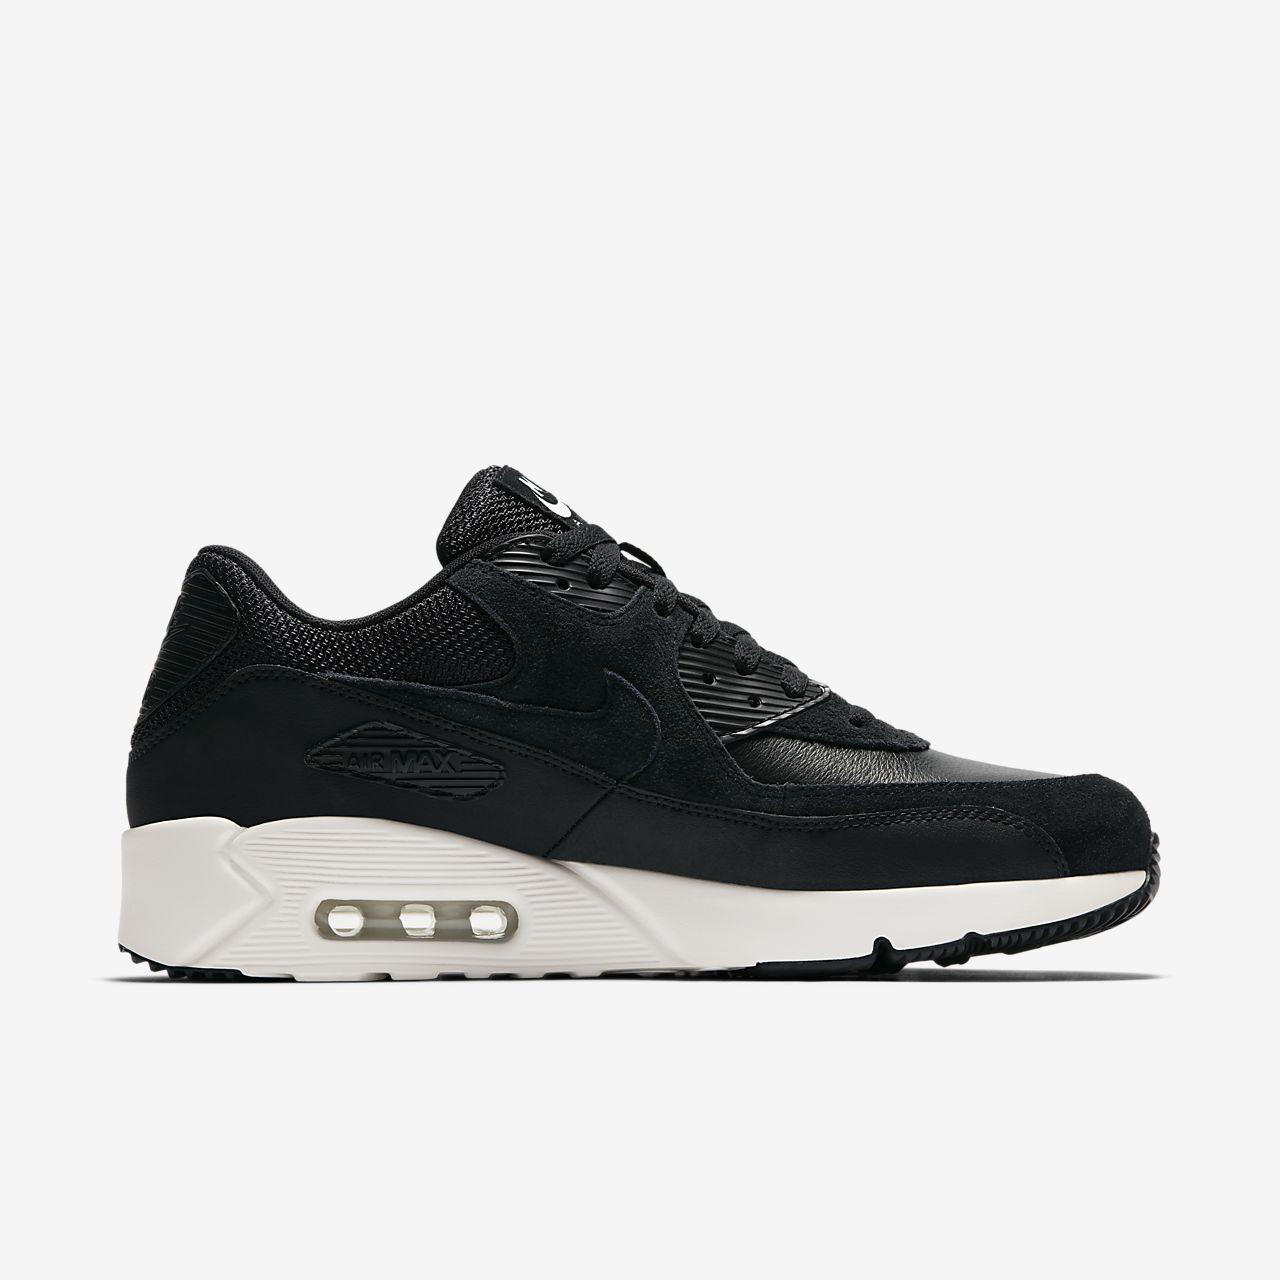 ... Chaussure Nike Air Max 90 Ultra 2.0 pour Homme